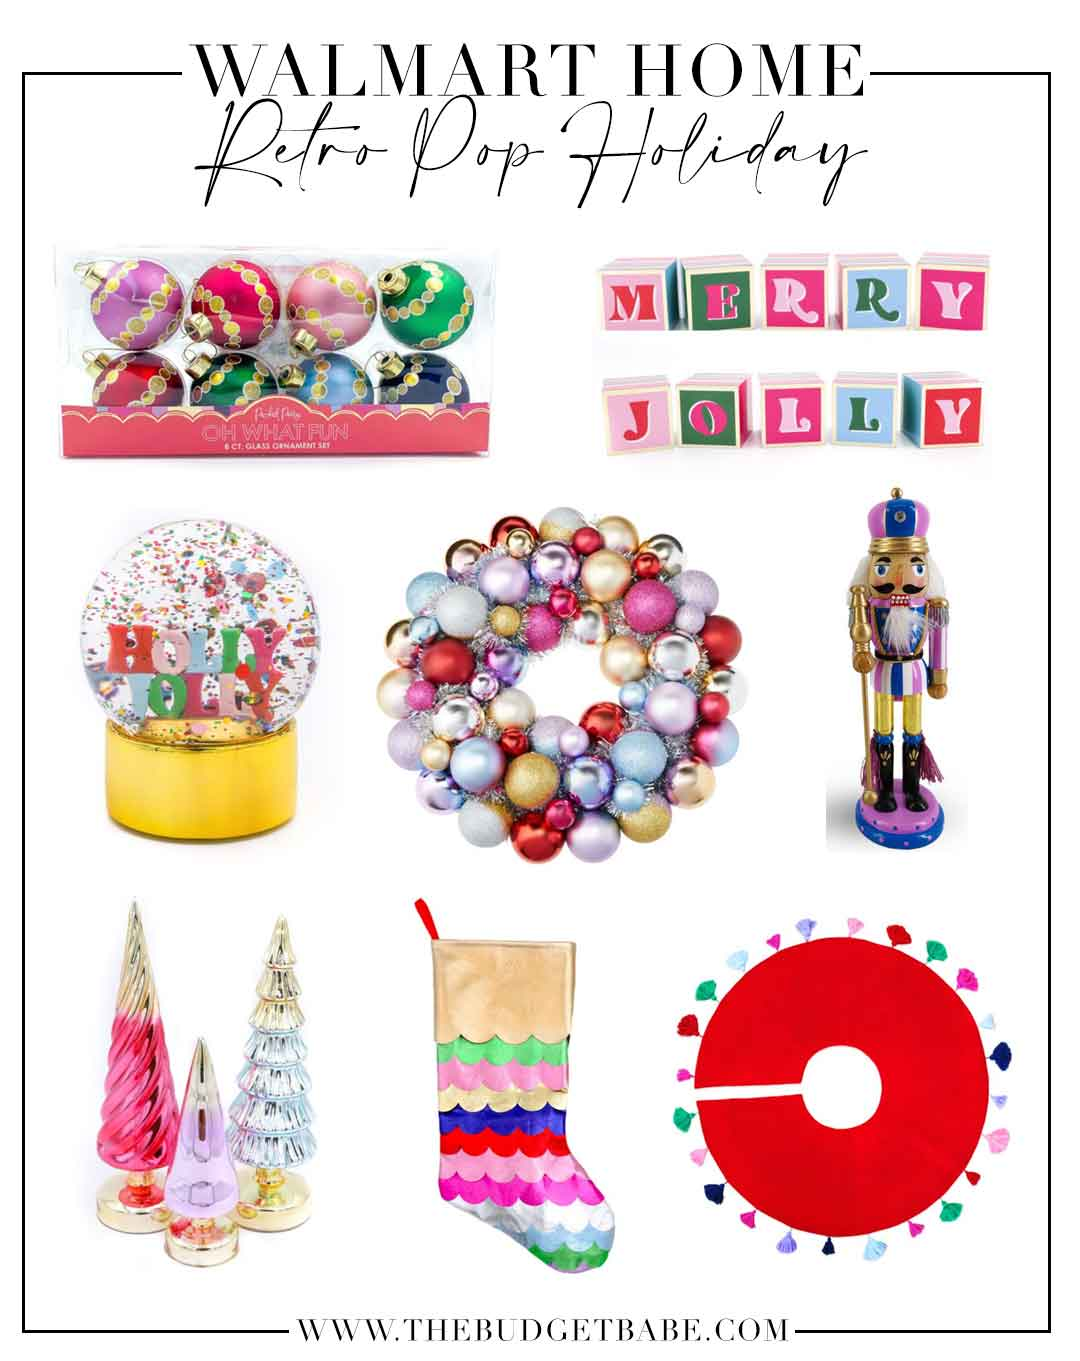 Walmart Home Decor Finds are fun and colorful this season!